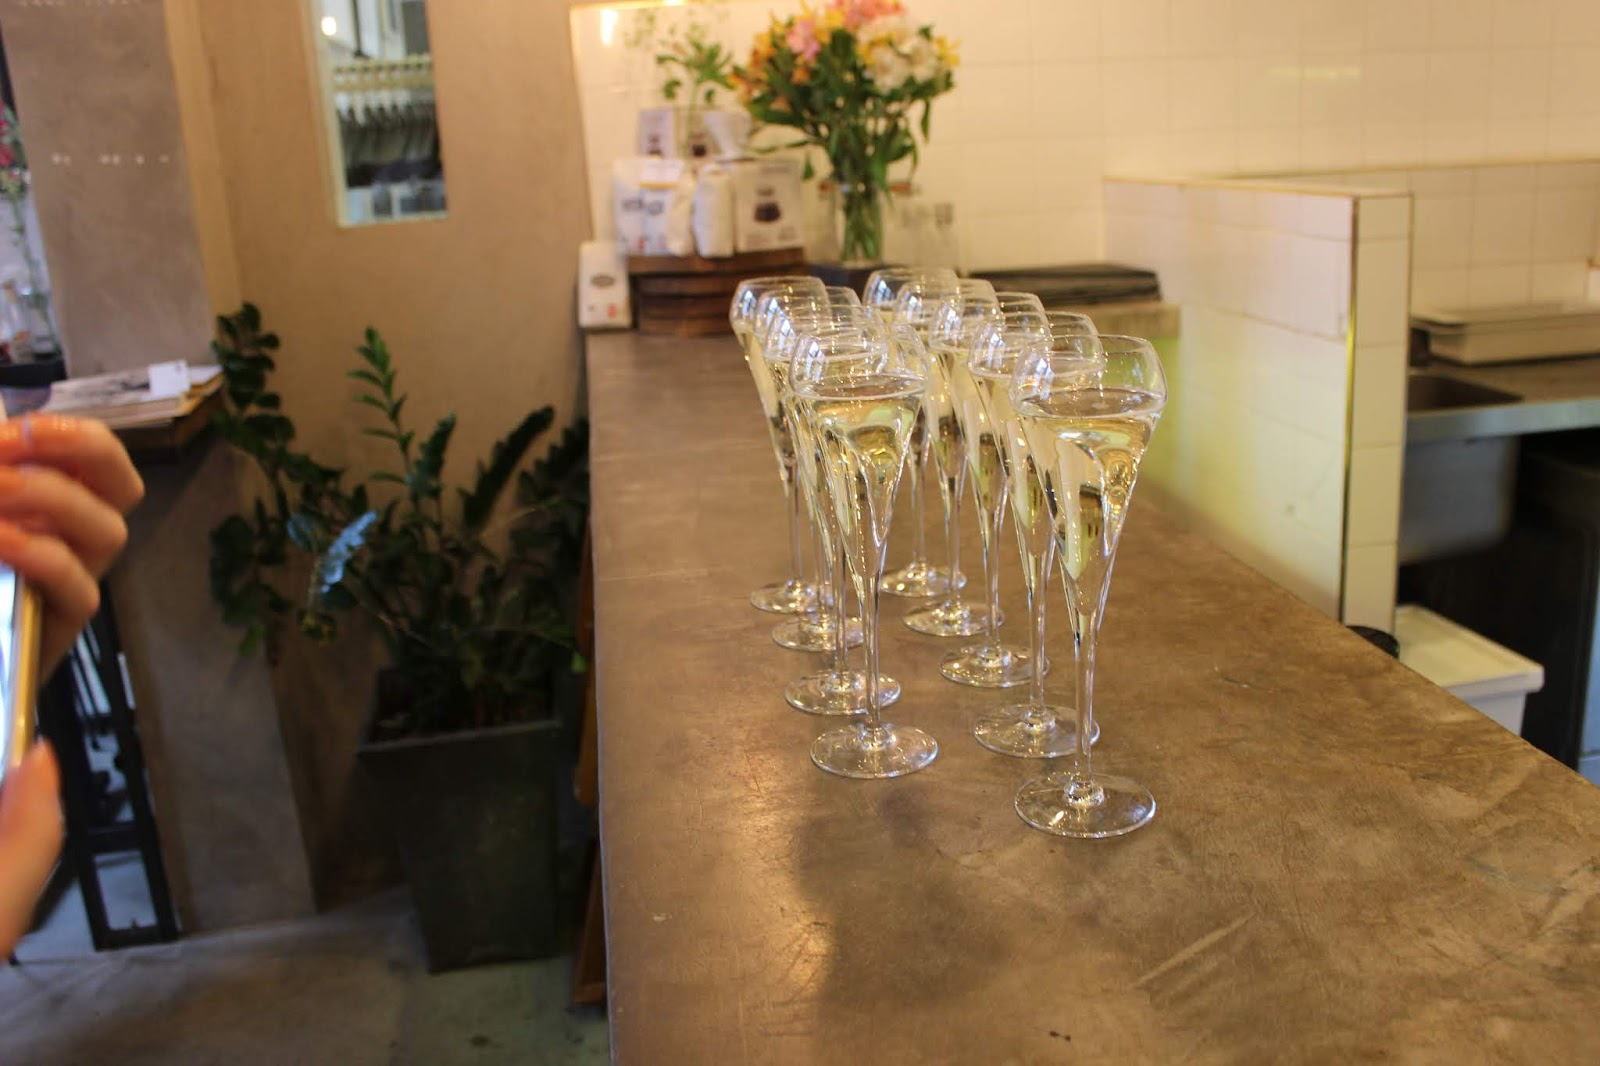 Prosecco lined up at York's Cafe